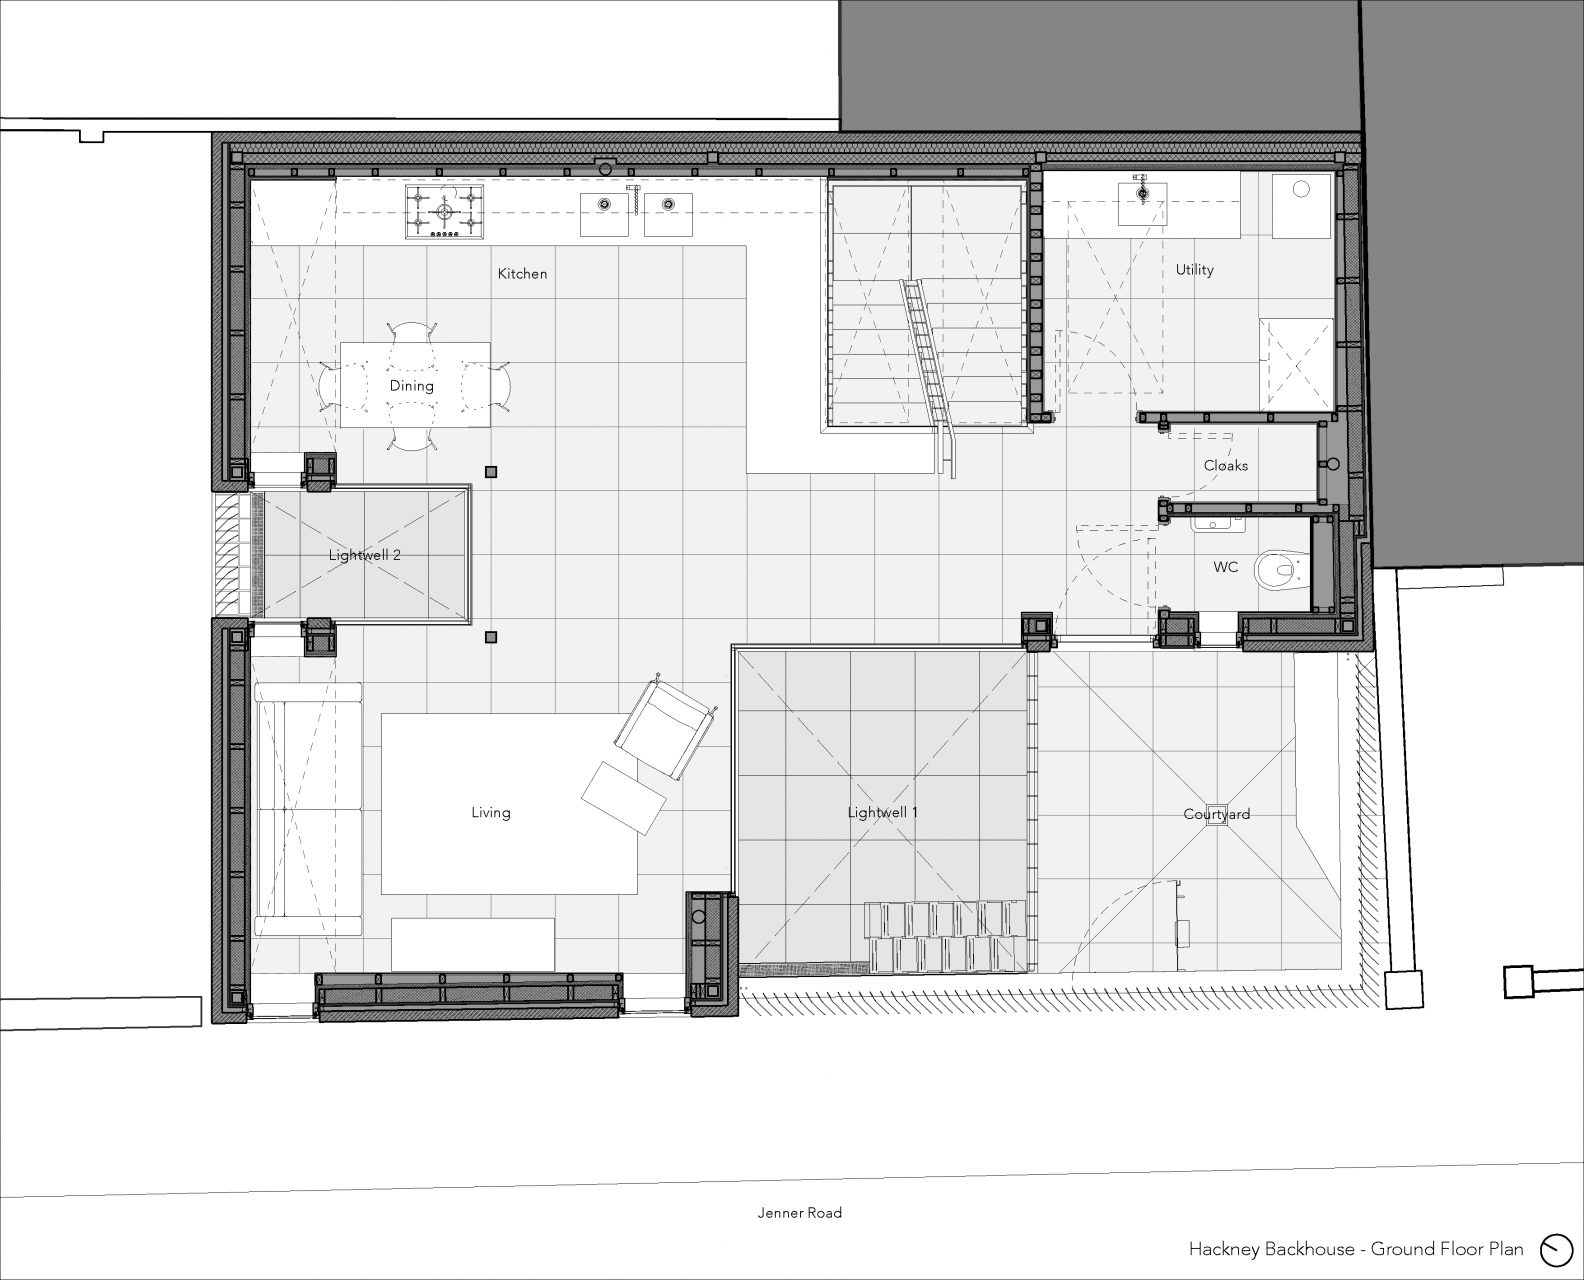 Hackney Backhouse – Ground Floor Plan